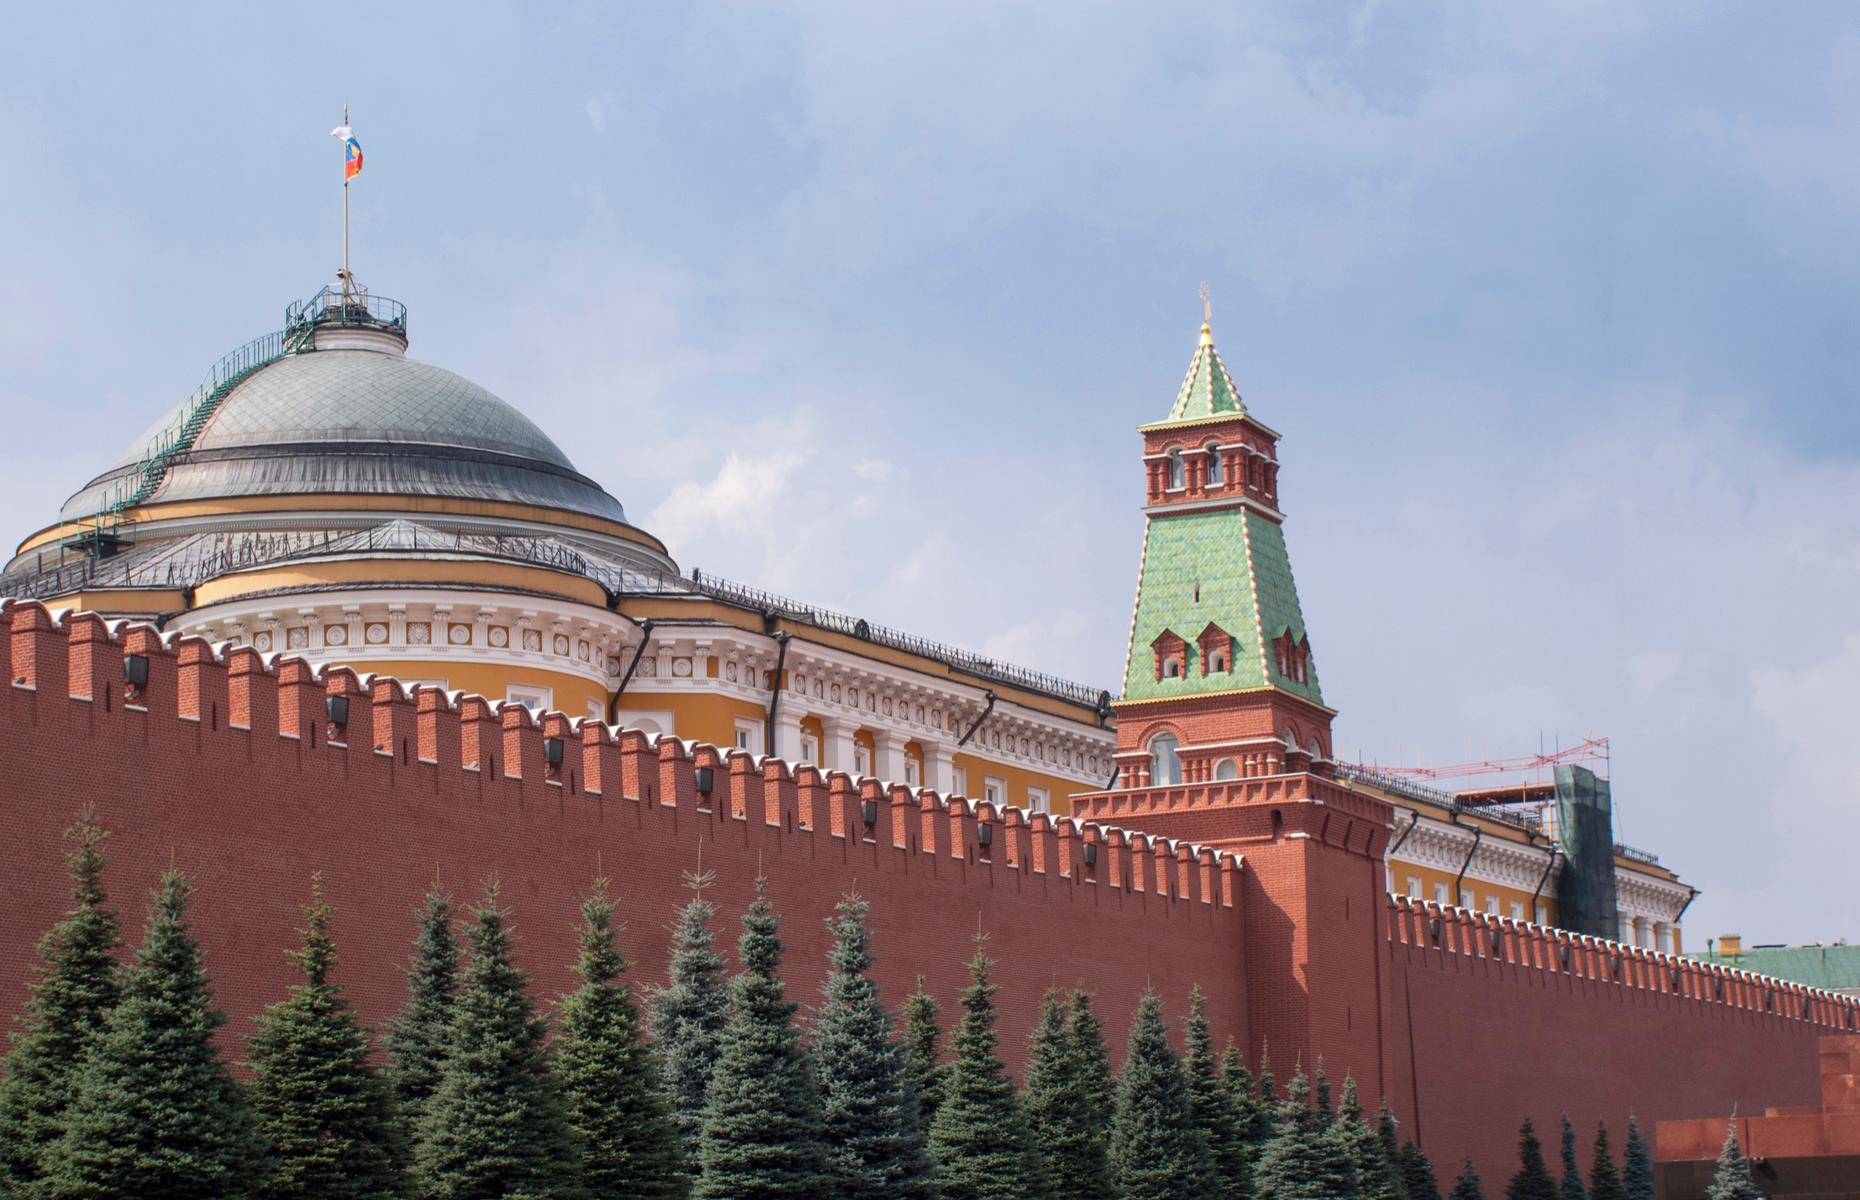 Slide 24 of 31: Visitors can walk the Kremlin's lengthy perimeter but, given the 62-foot (19m) high walls, you won't see much else. The best views of the complex and its 20 towers (which reach heights of 262 feet; 80m) are across the river in Sofiyskaya. Or, you can typically time a visit for noon on Saturday during April to September to watch the changing of the guards ceremony. An admission fee is required to enter the church museums.